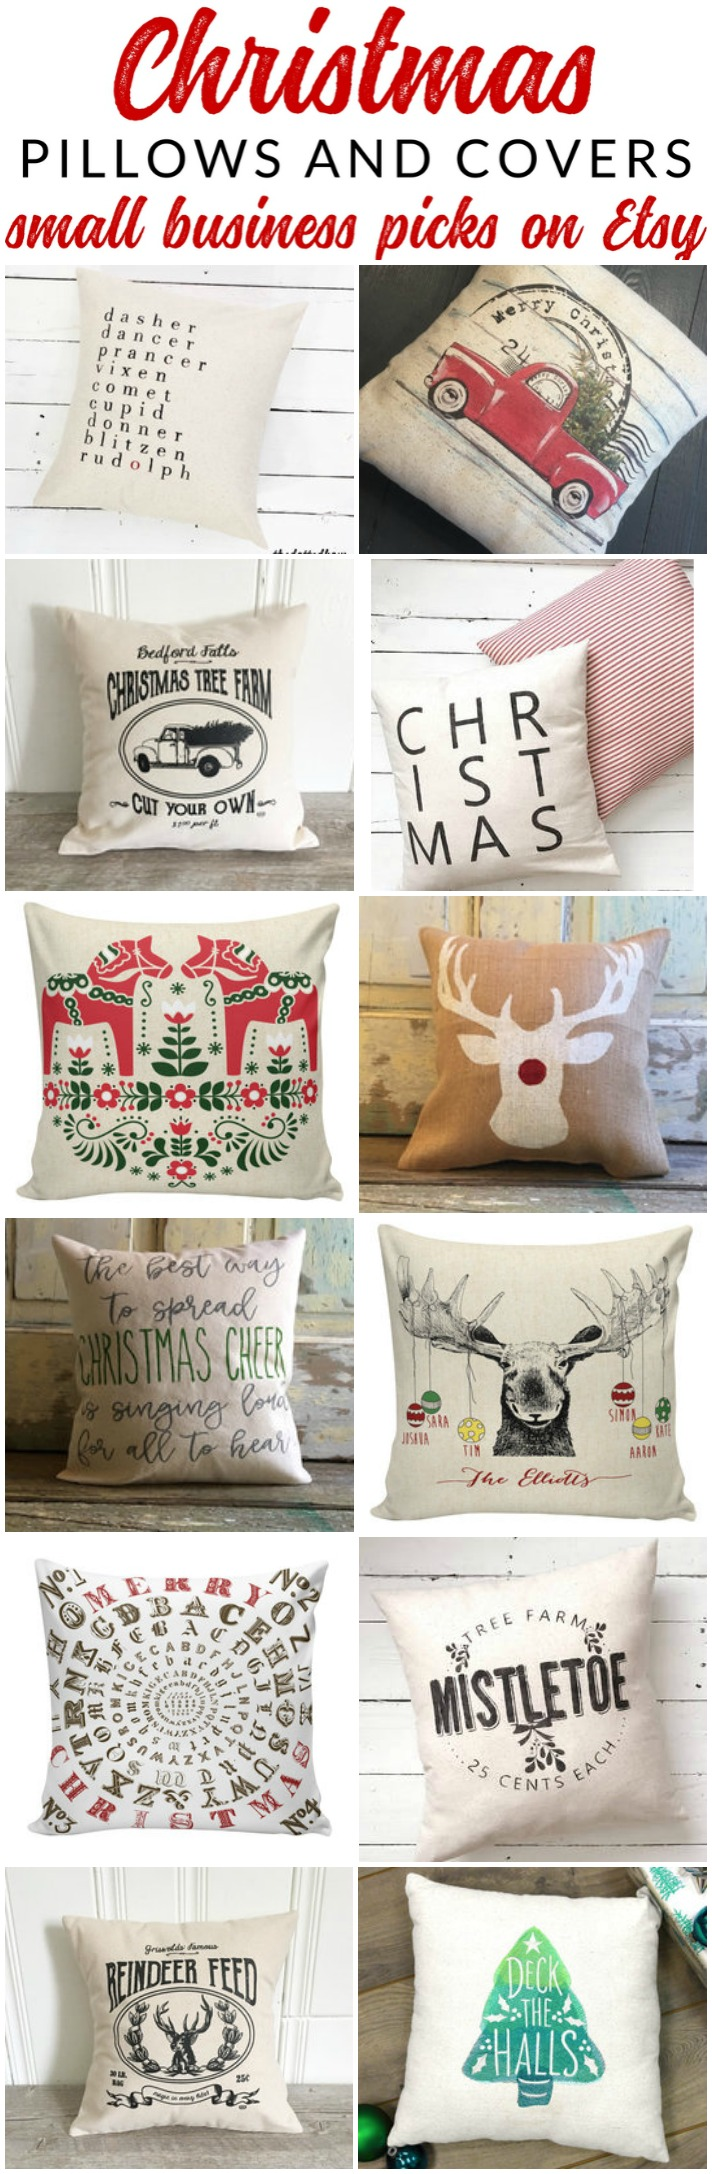 Shop farmhouse style Christmas pillows – these stylish and budget-friendly buys are perfect for changing your home decor for Christmas. Decorate with affordable throws and pillows this winter.